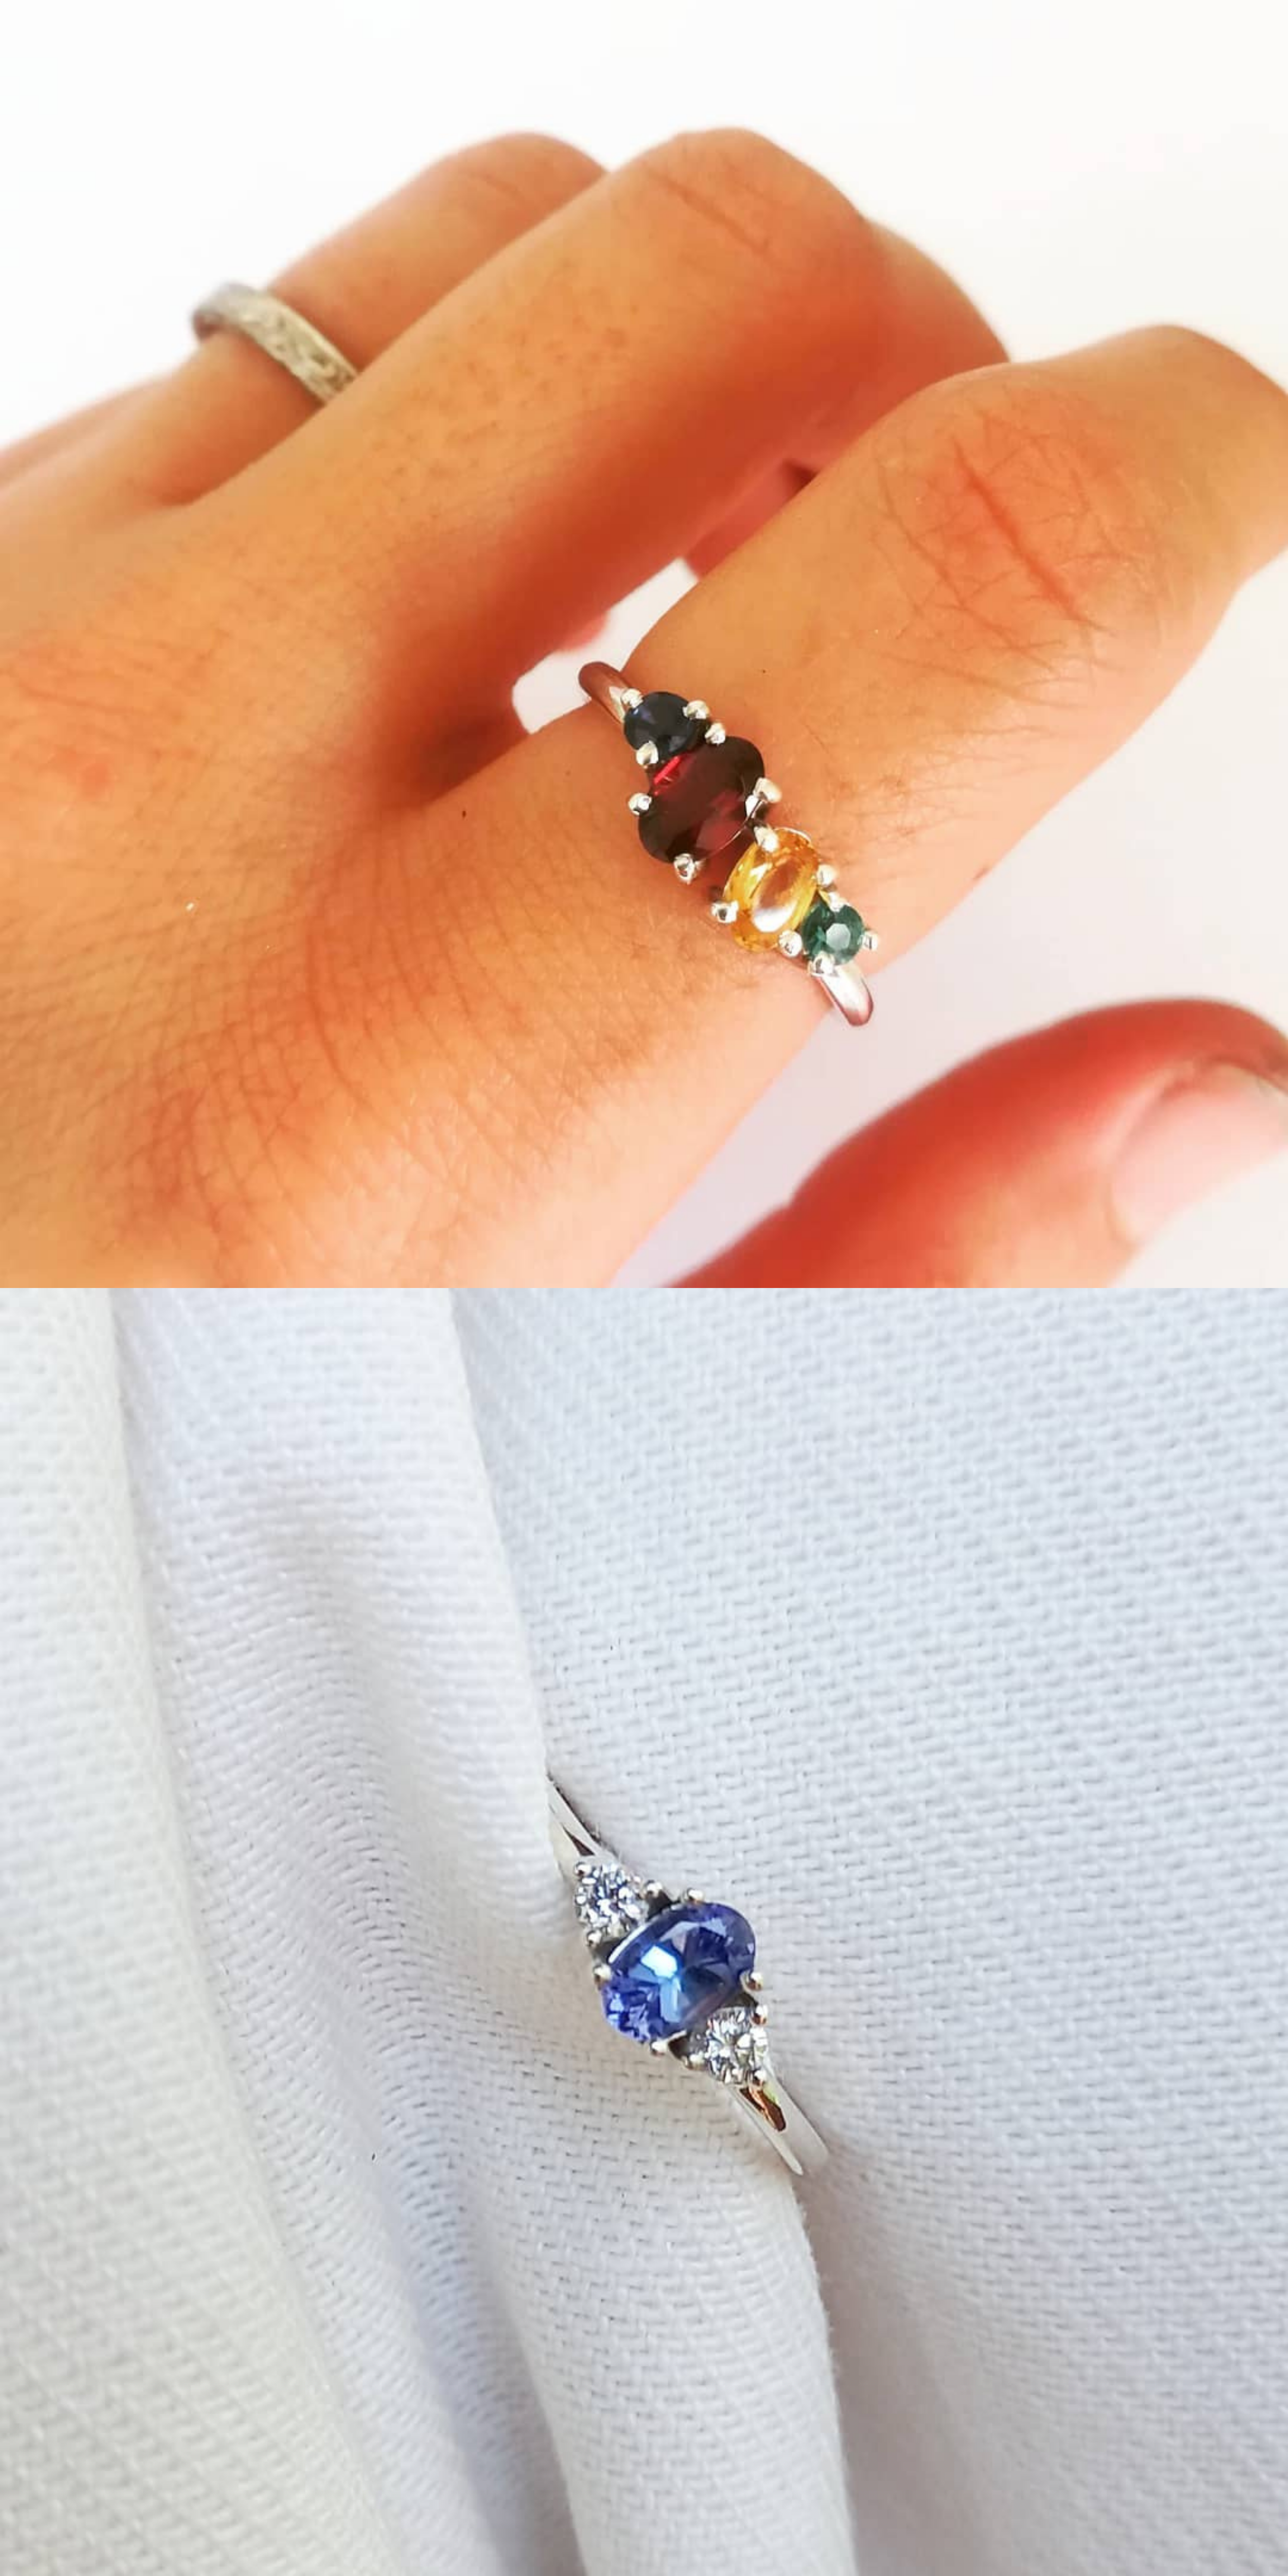 c jade jewellery south african jeweller engagement rings